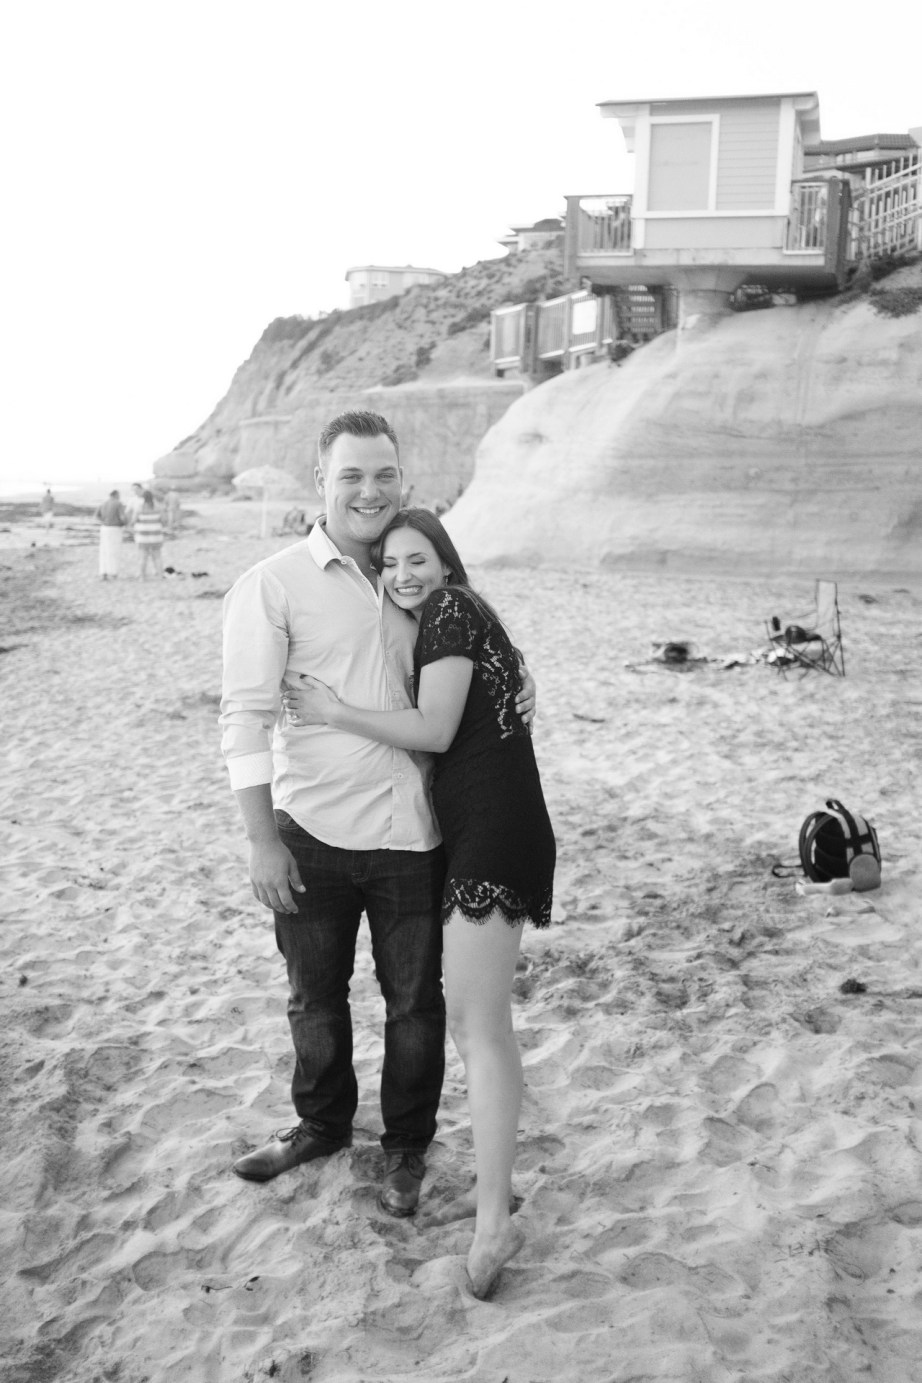 suprise_proposal_engagement_photographer_solana_beach_nicole_caldwell24